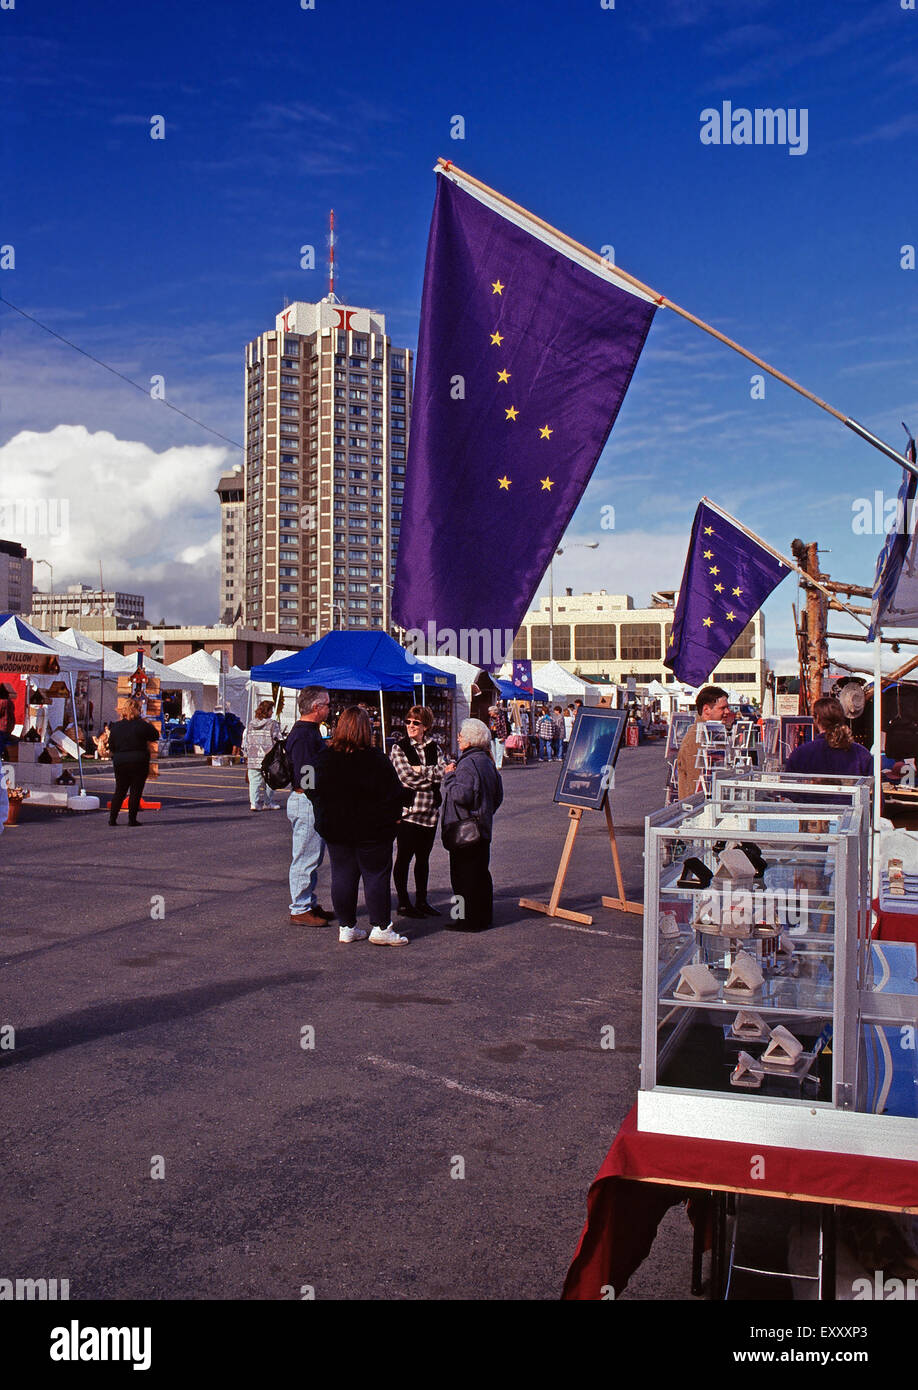 Saturday market, Anchorage,Alaska - Stock Image